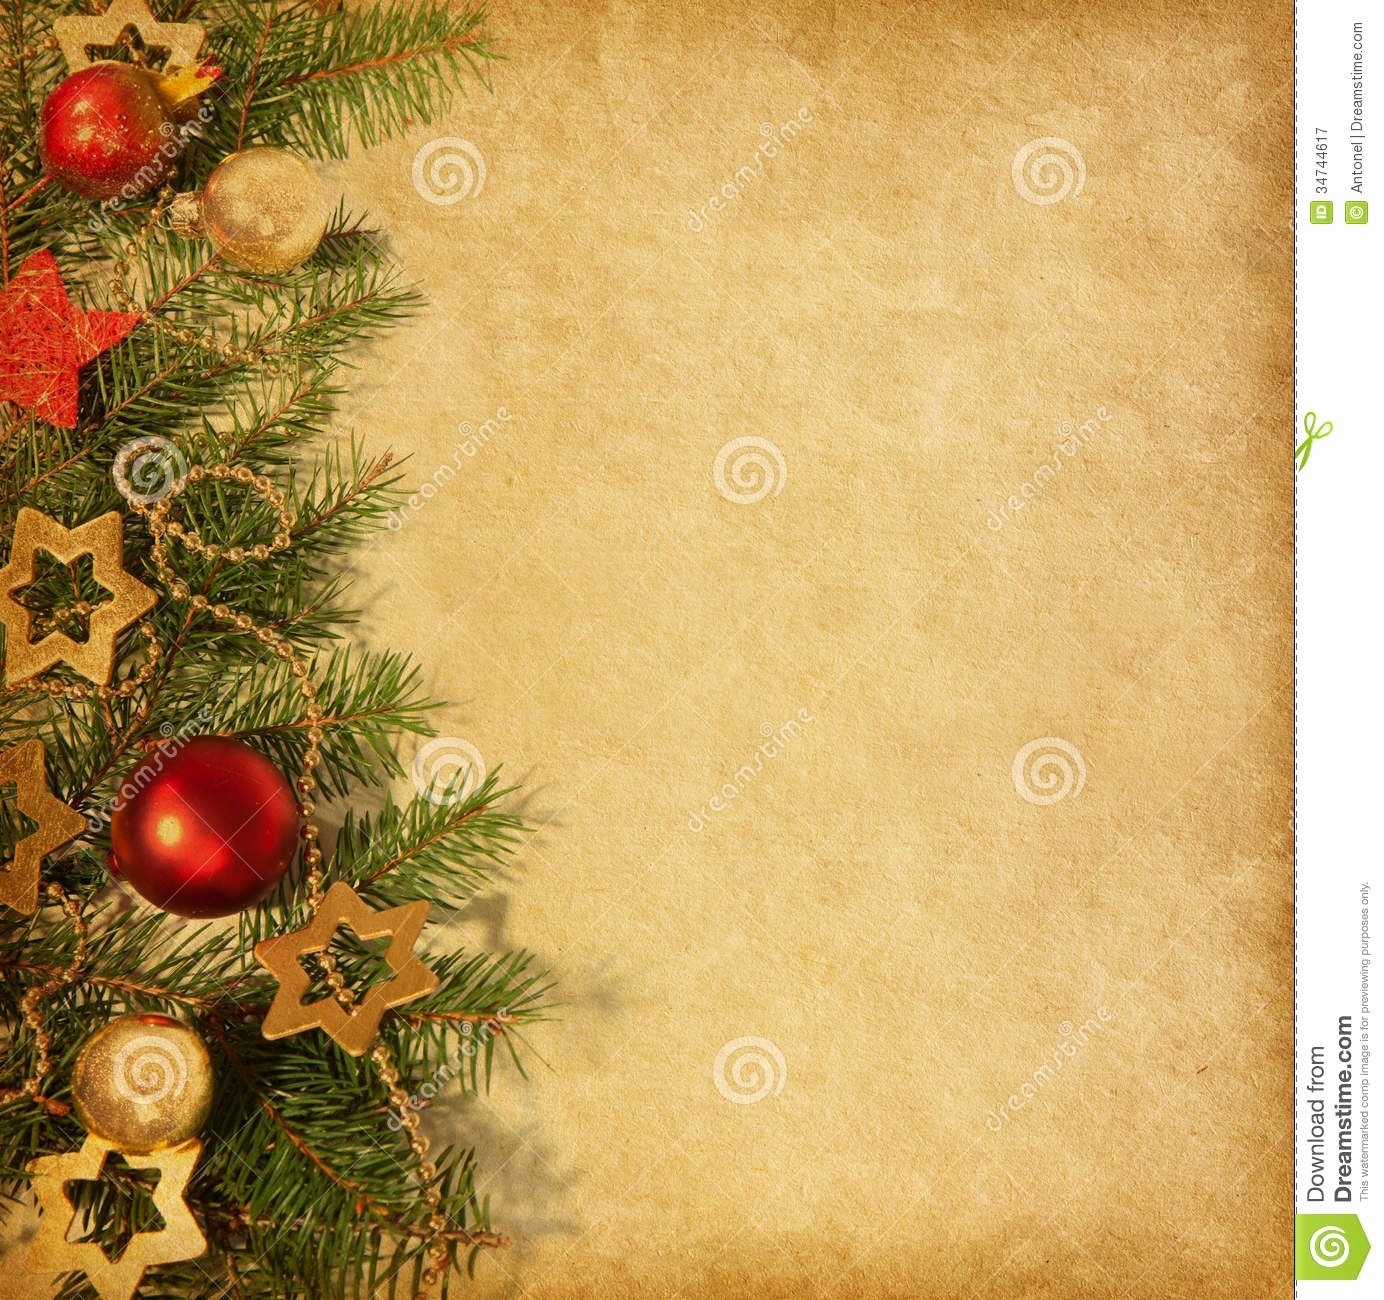 Christmas Letterhead Background 6 Best Images Of Free Printable Xmas - Free Printable Christmas Backgrounds